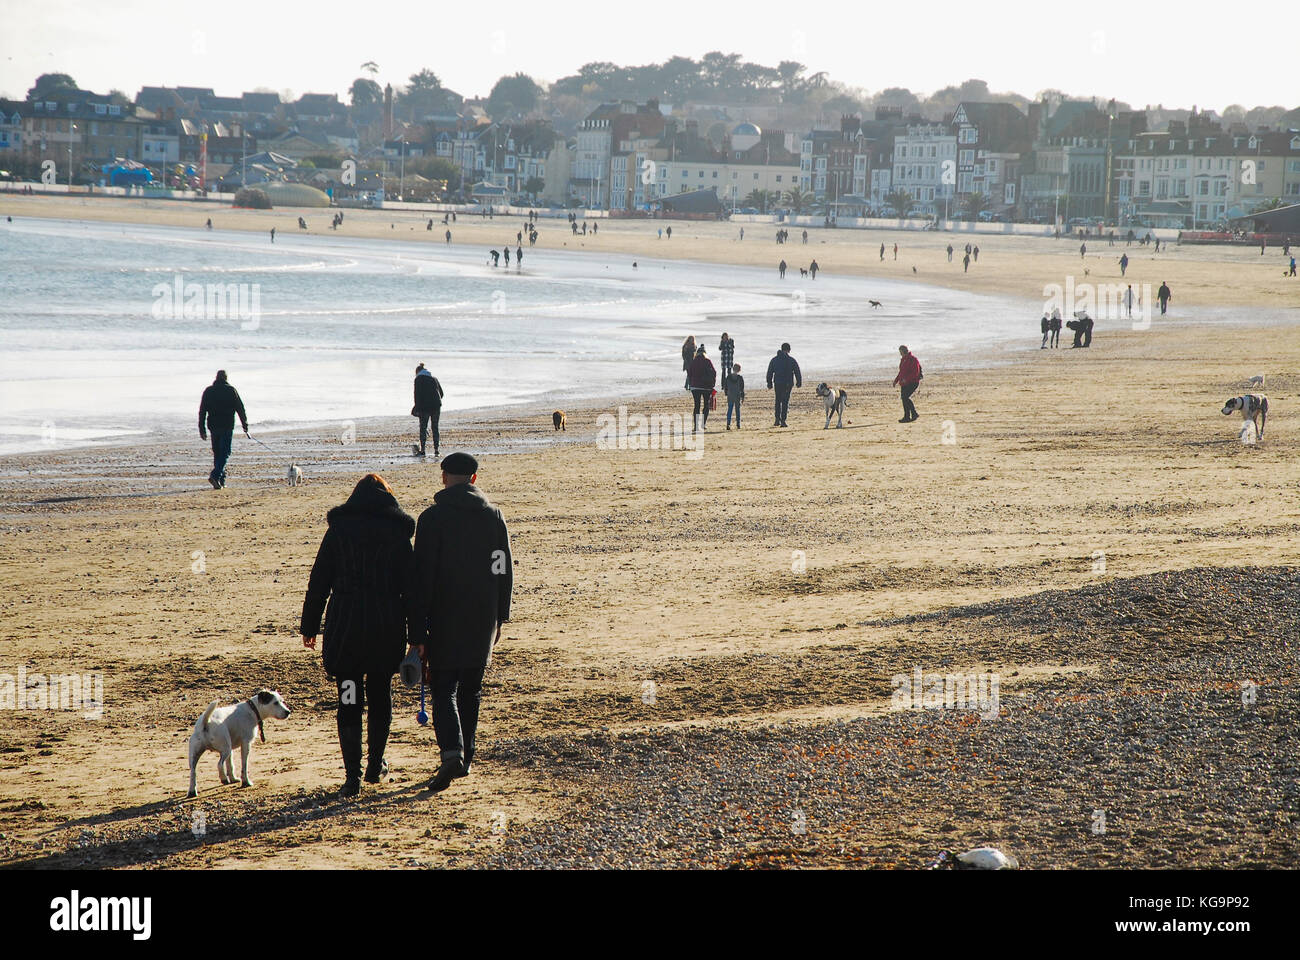 Weymouth, Dorset. 5th November 2017 - People wrap up warm and make the most of a gorgeous autumn day, strolling - Stock Image